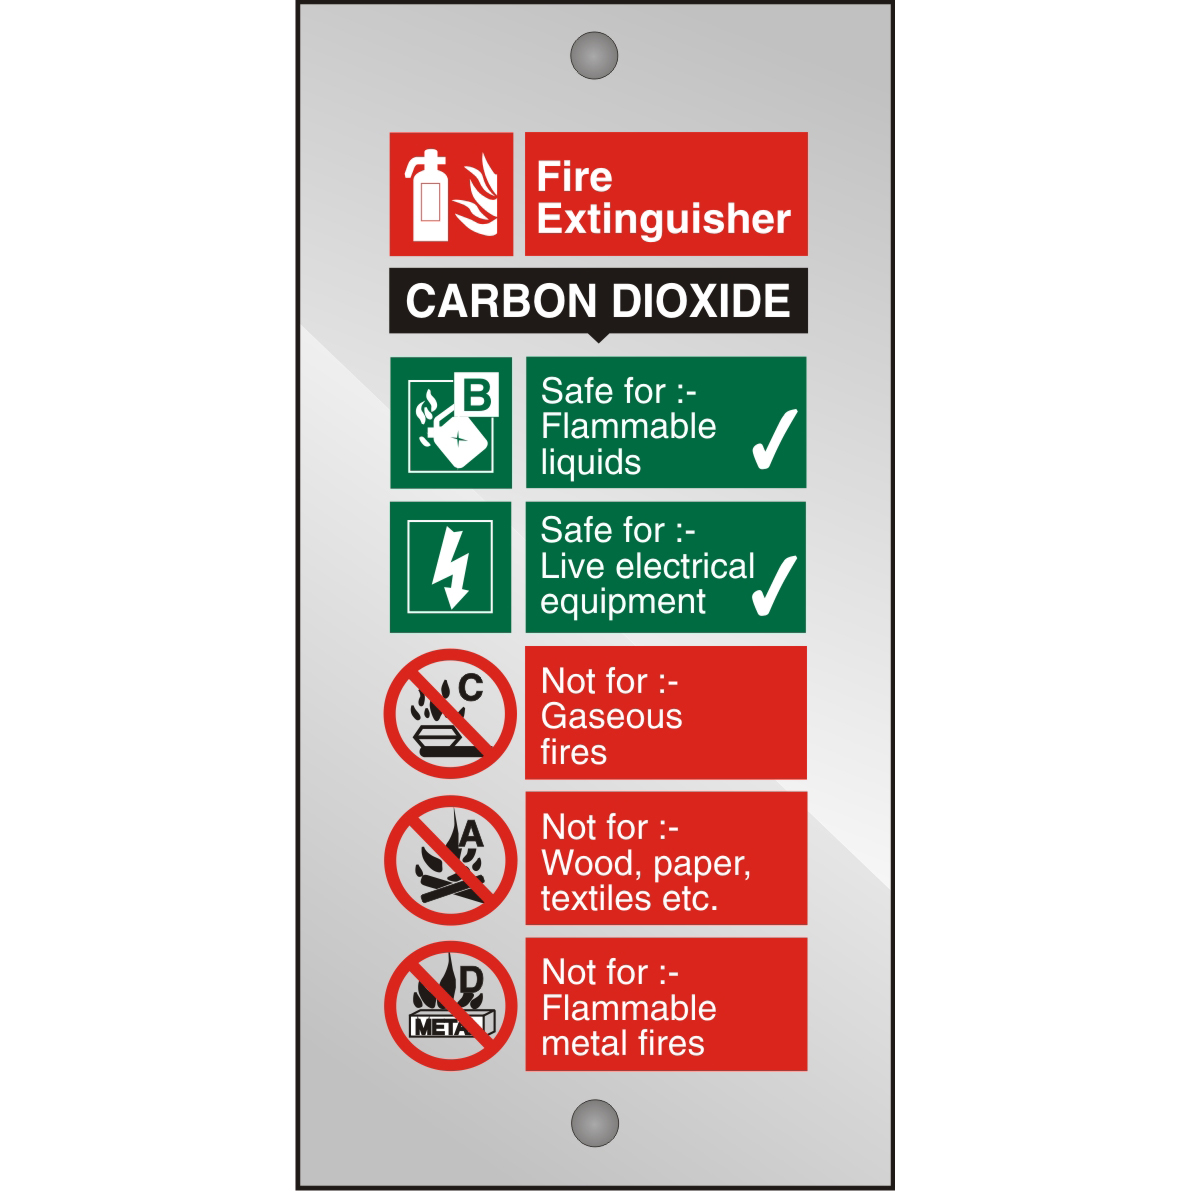 Clear Acrylic Sign 100x200 5mm Fire Extinguisher CO2 Ref CACFF093100x200 Up to 10 Day Leadtime